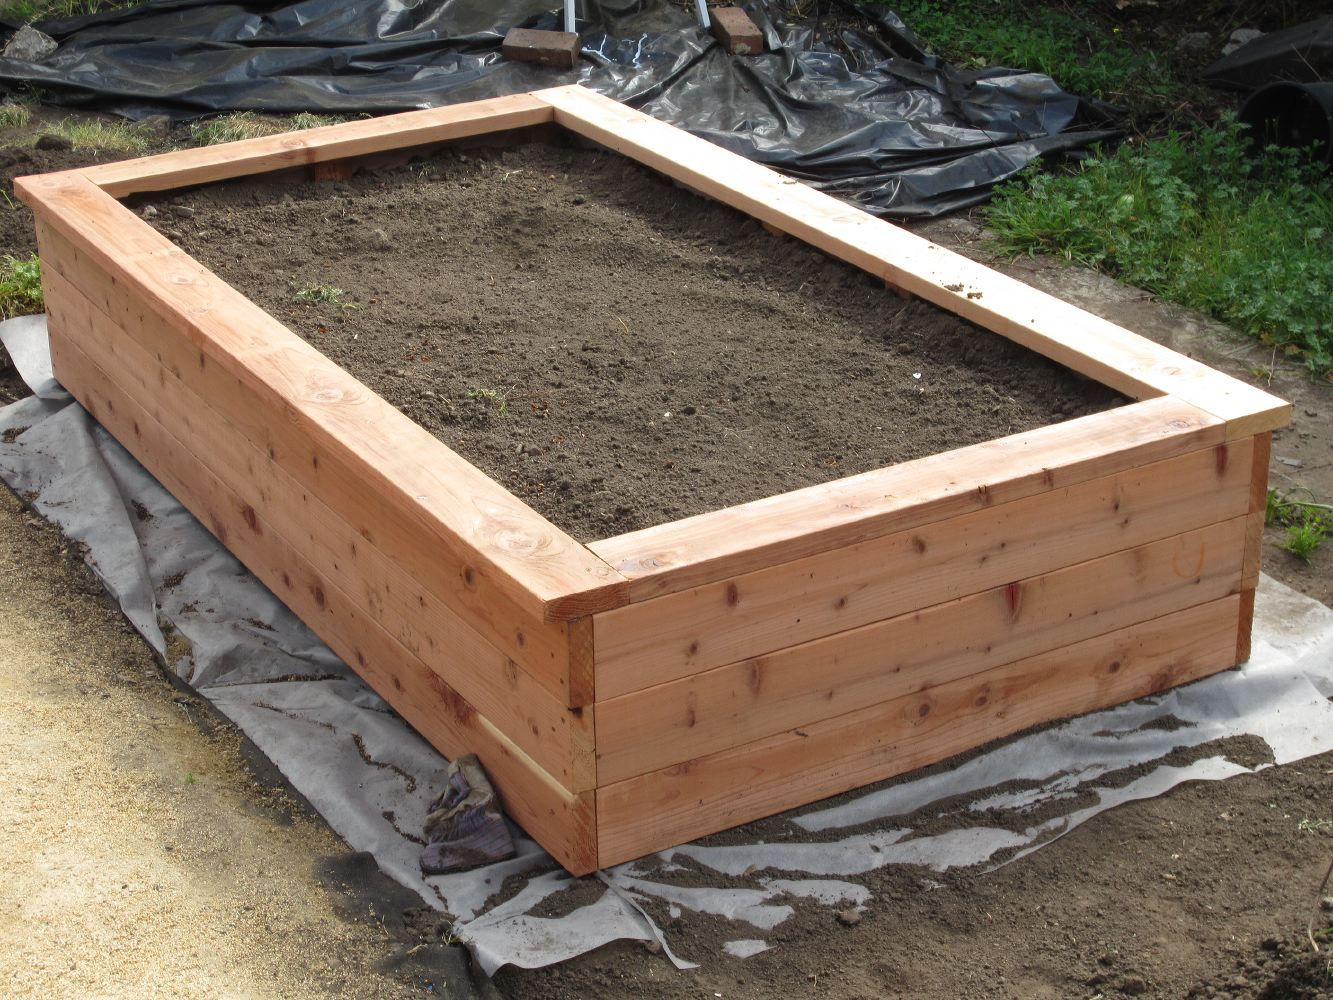 BUILDING A PLANTER BOX AND PLANTING FRUITS AND VEGGIES ...